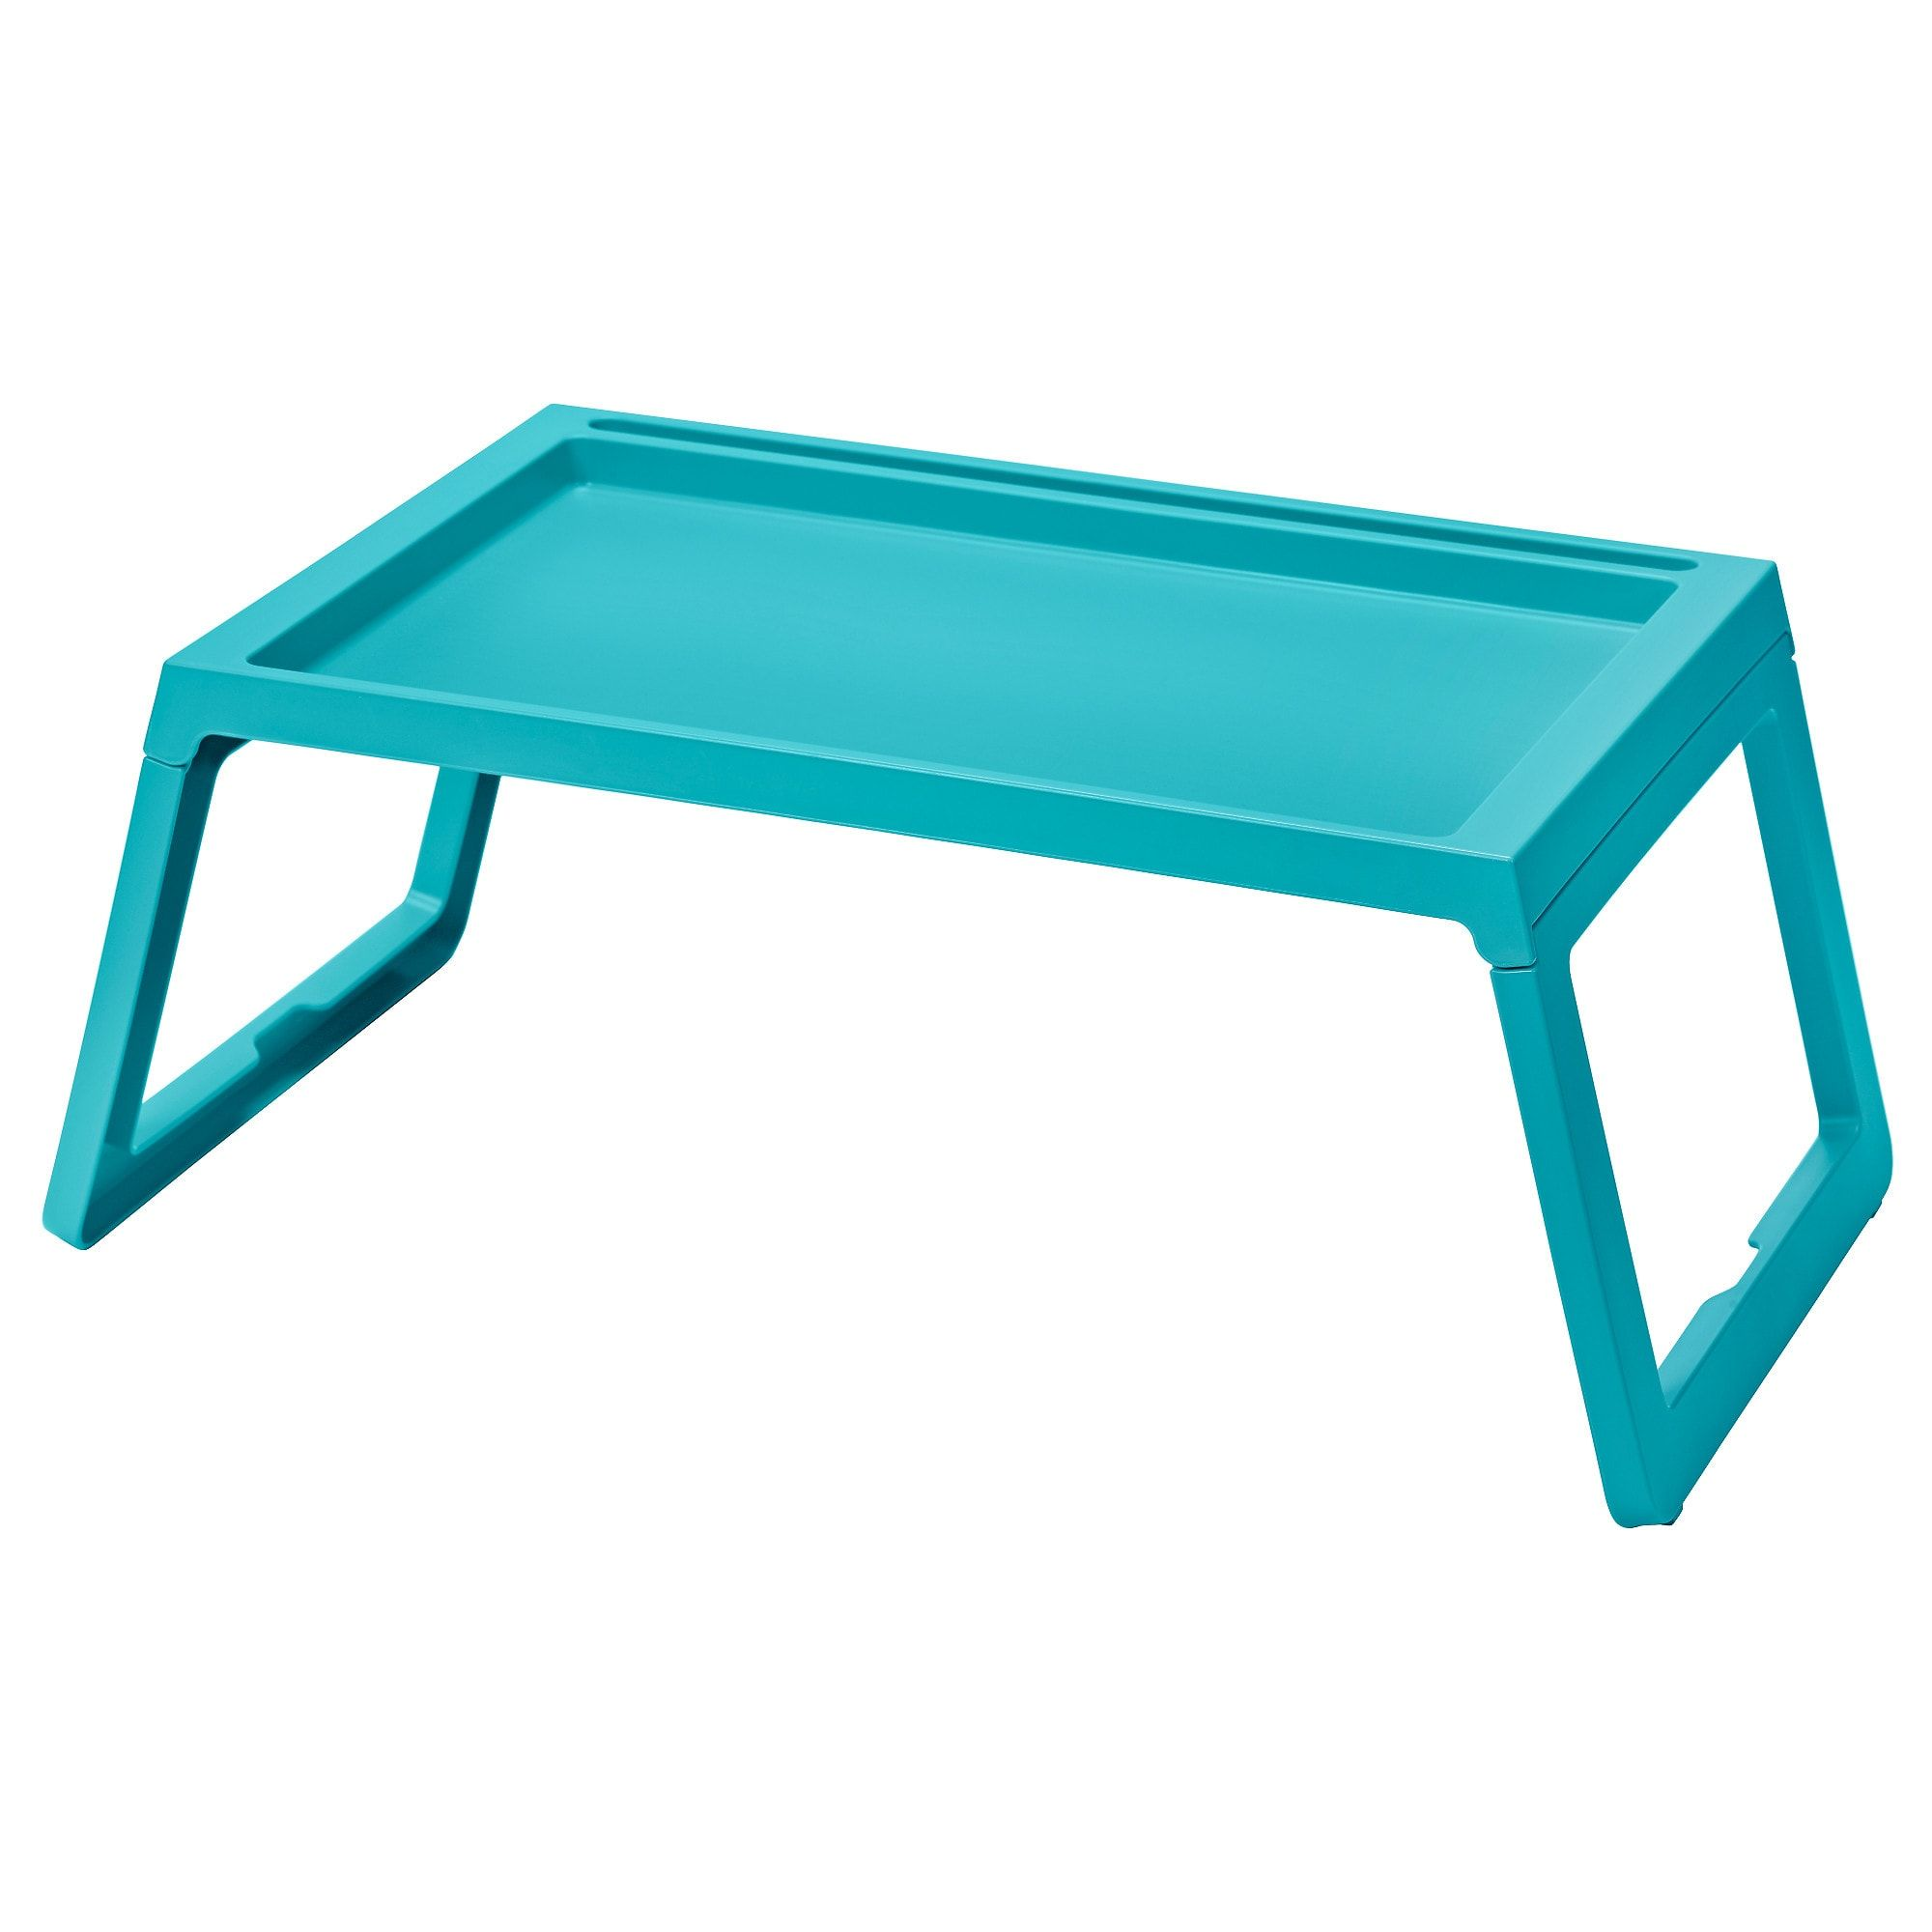 Klipsk Bed Tray Turquoise With Images Bed Tray Ikea Ikea Tv